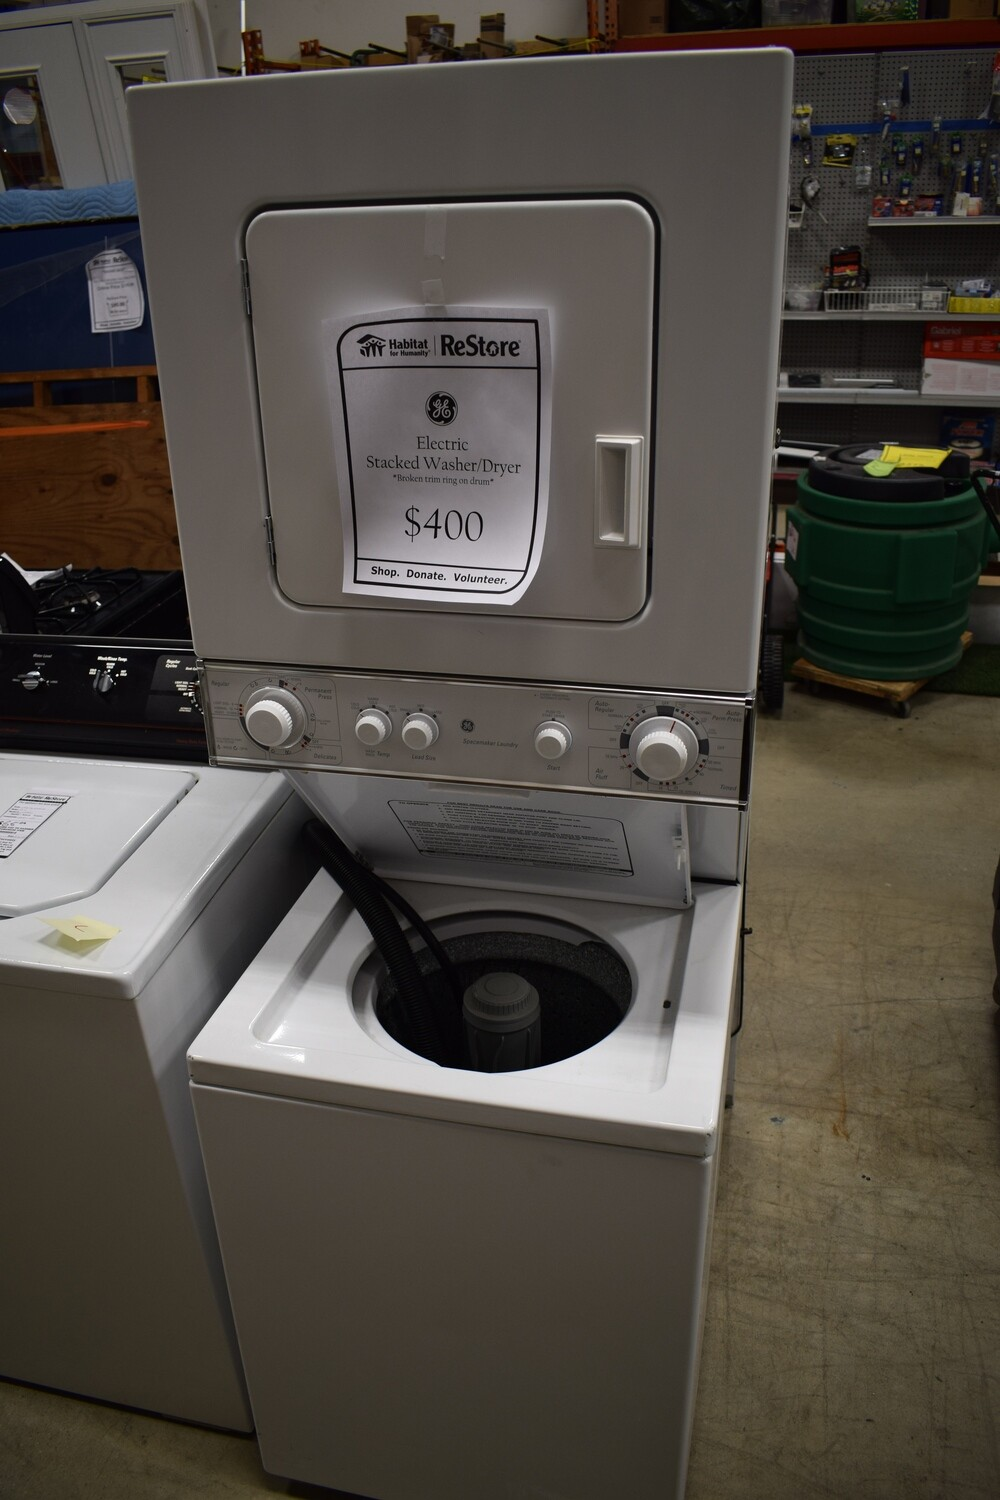 G.E. Electric Stacked Washer/Dryer